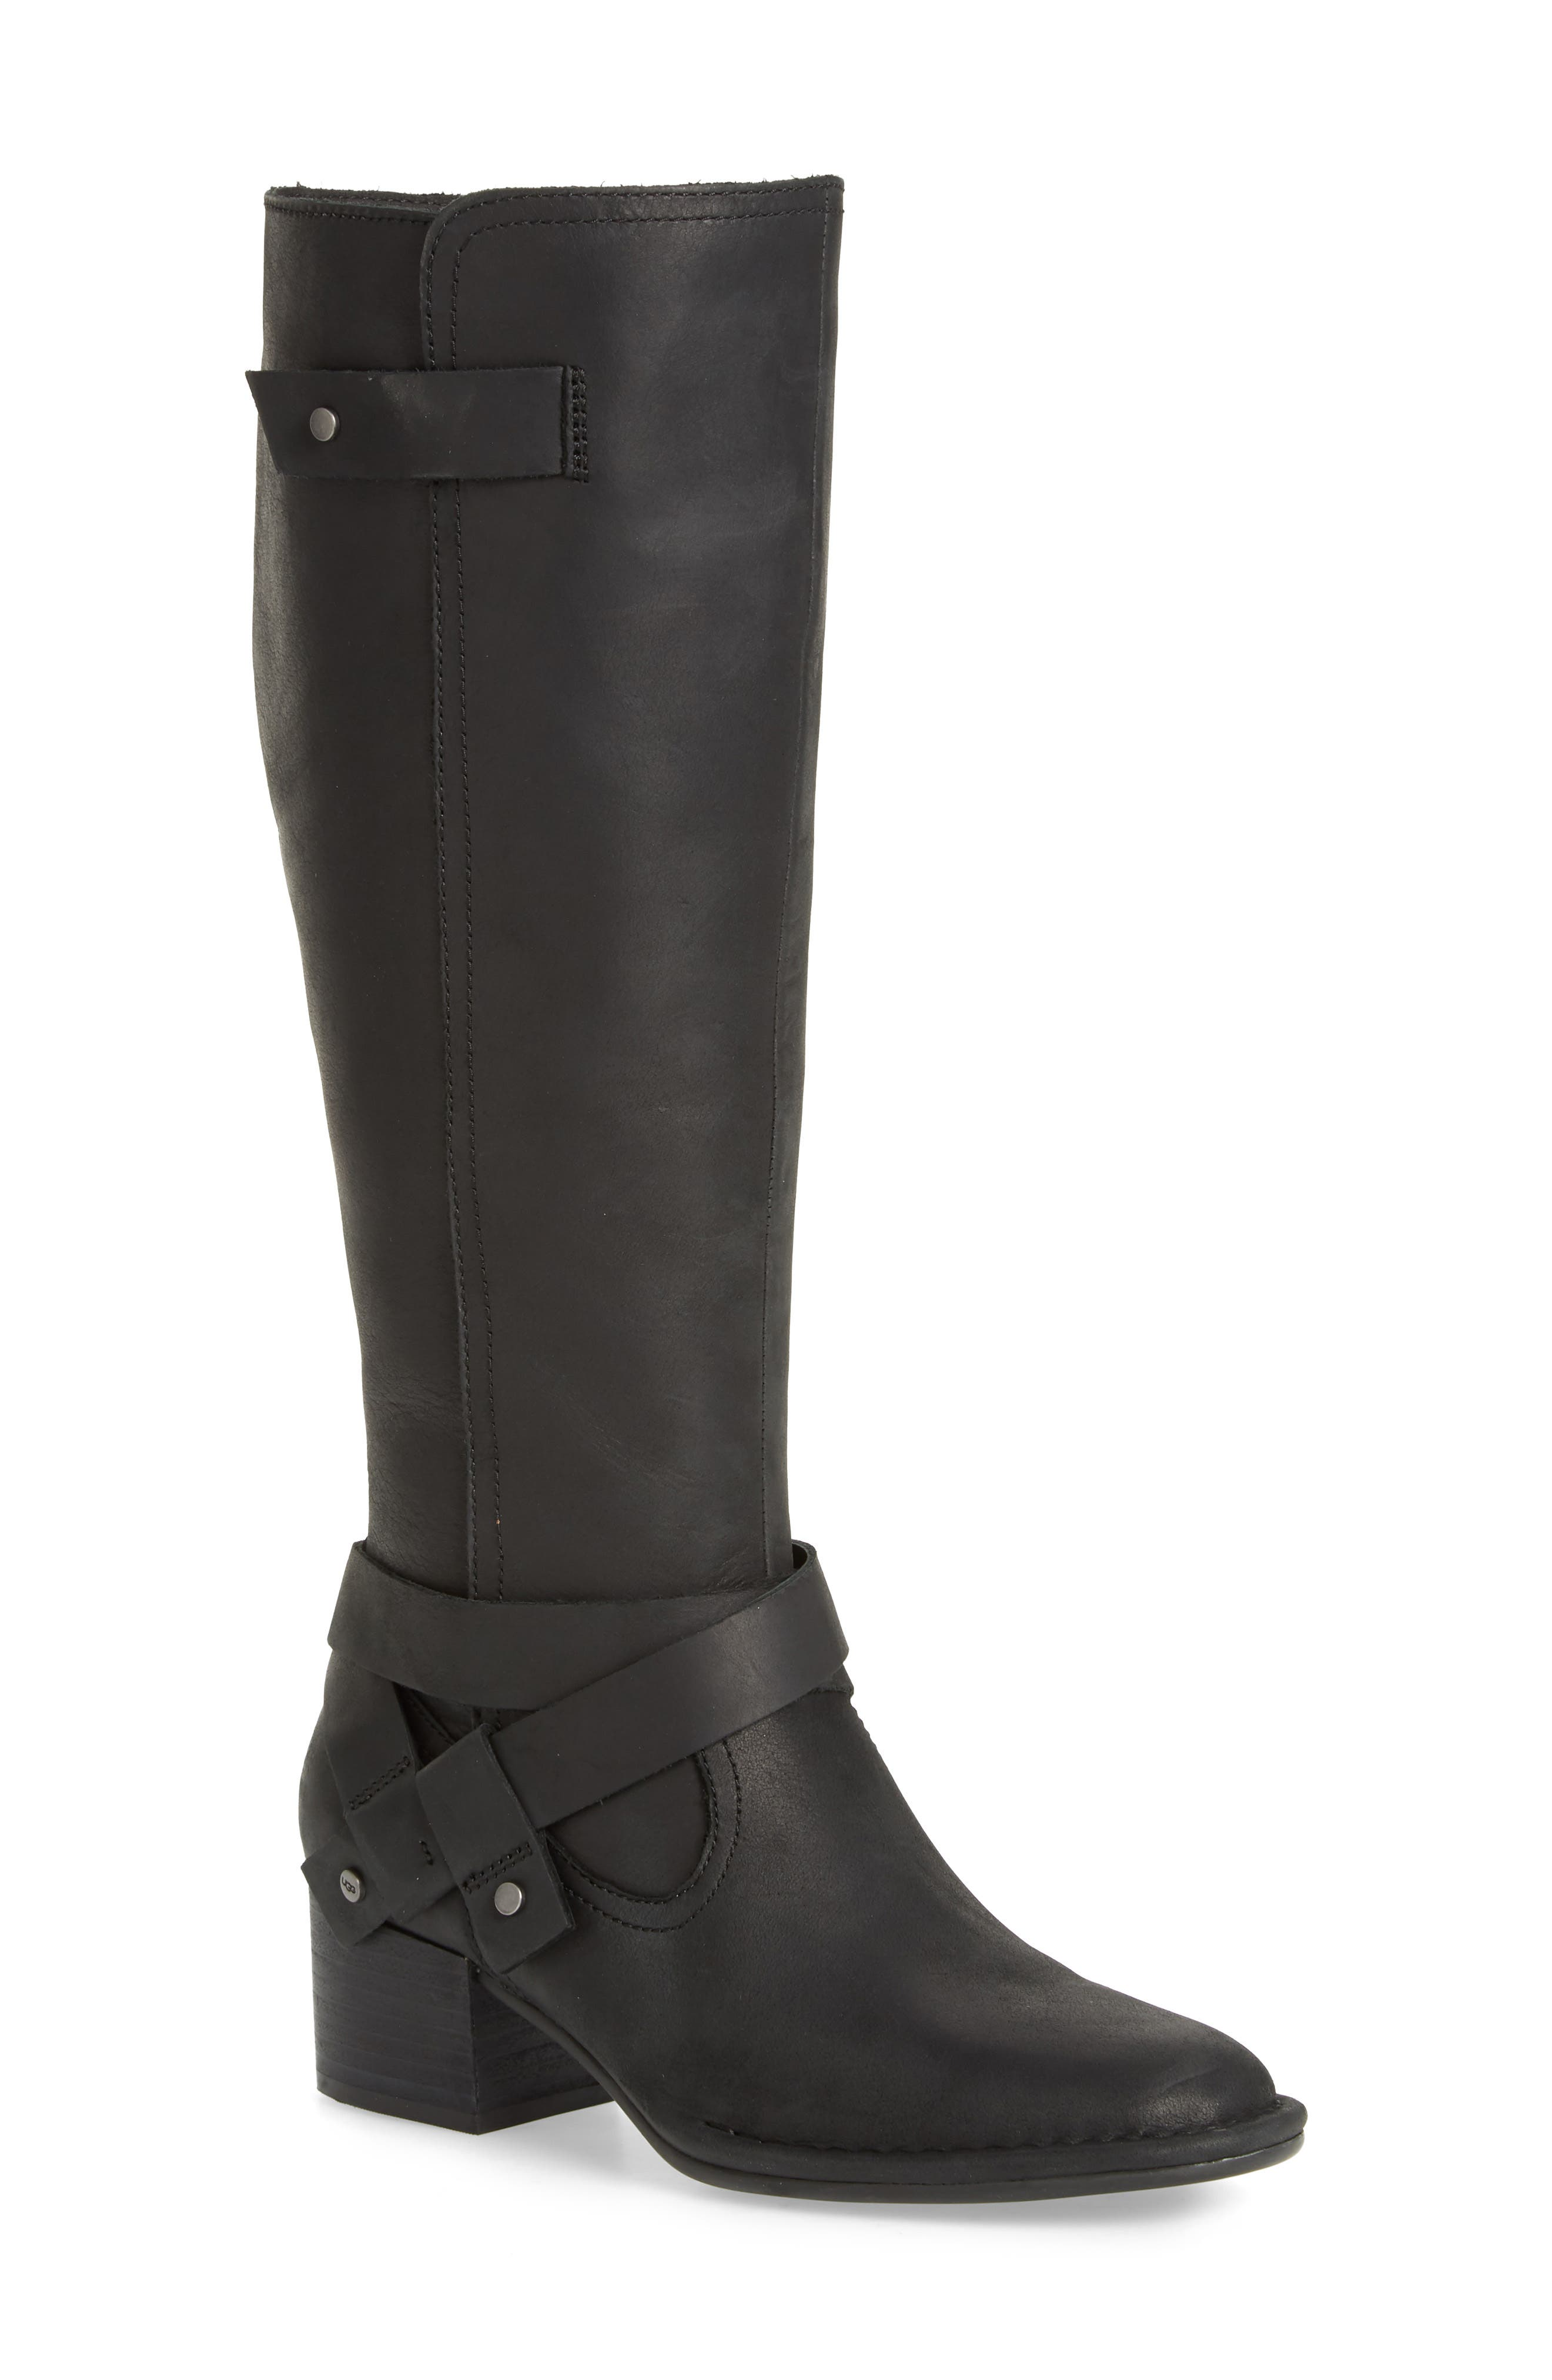 Bandara Knee High Boot,                             Main thumbnail 1, color,                             BLACK